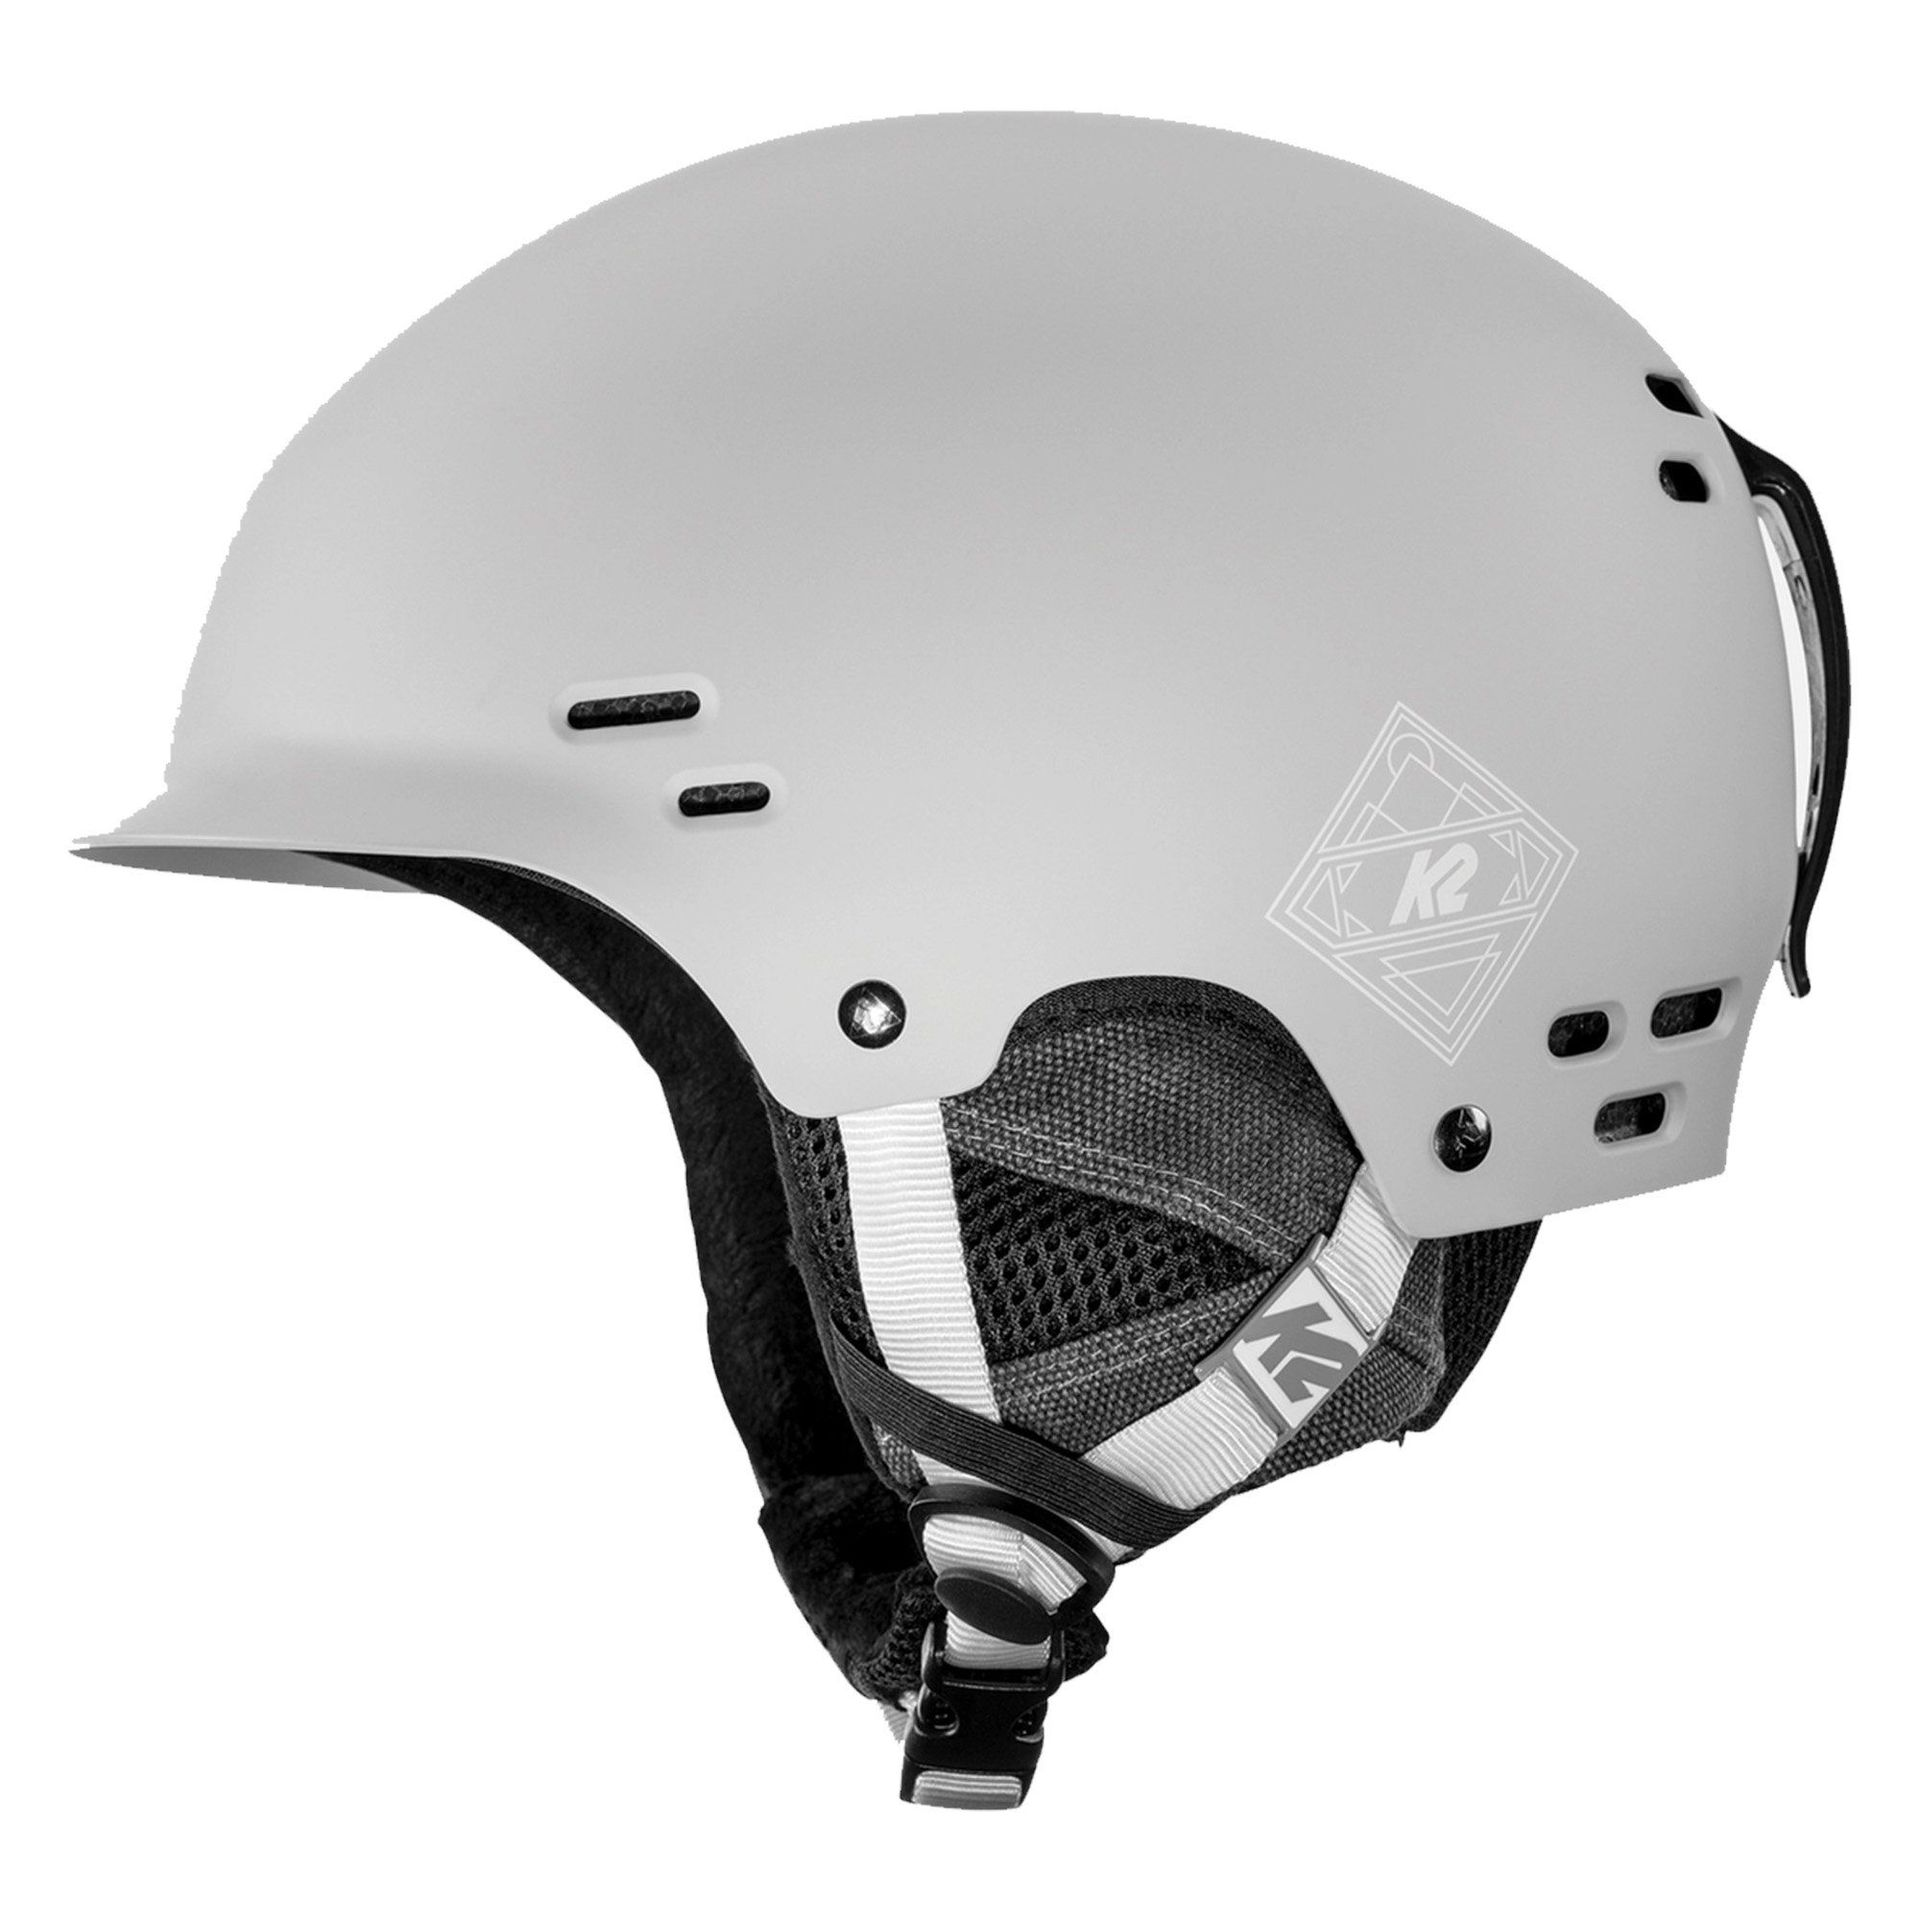 KASK K2 THRIVE 10C4004-32 GRAY